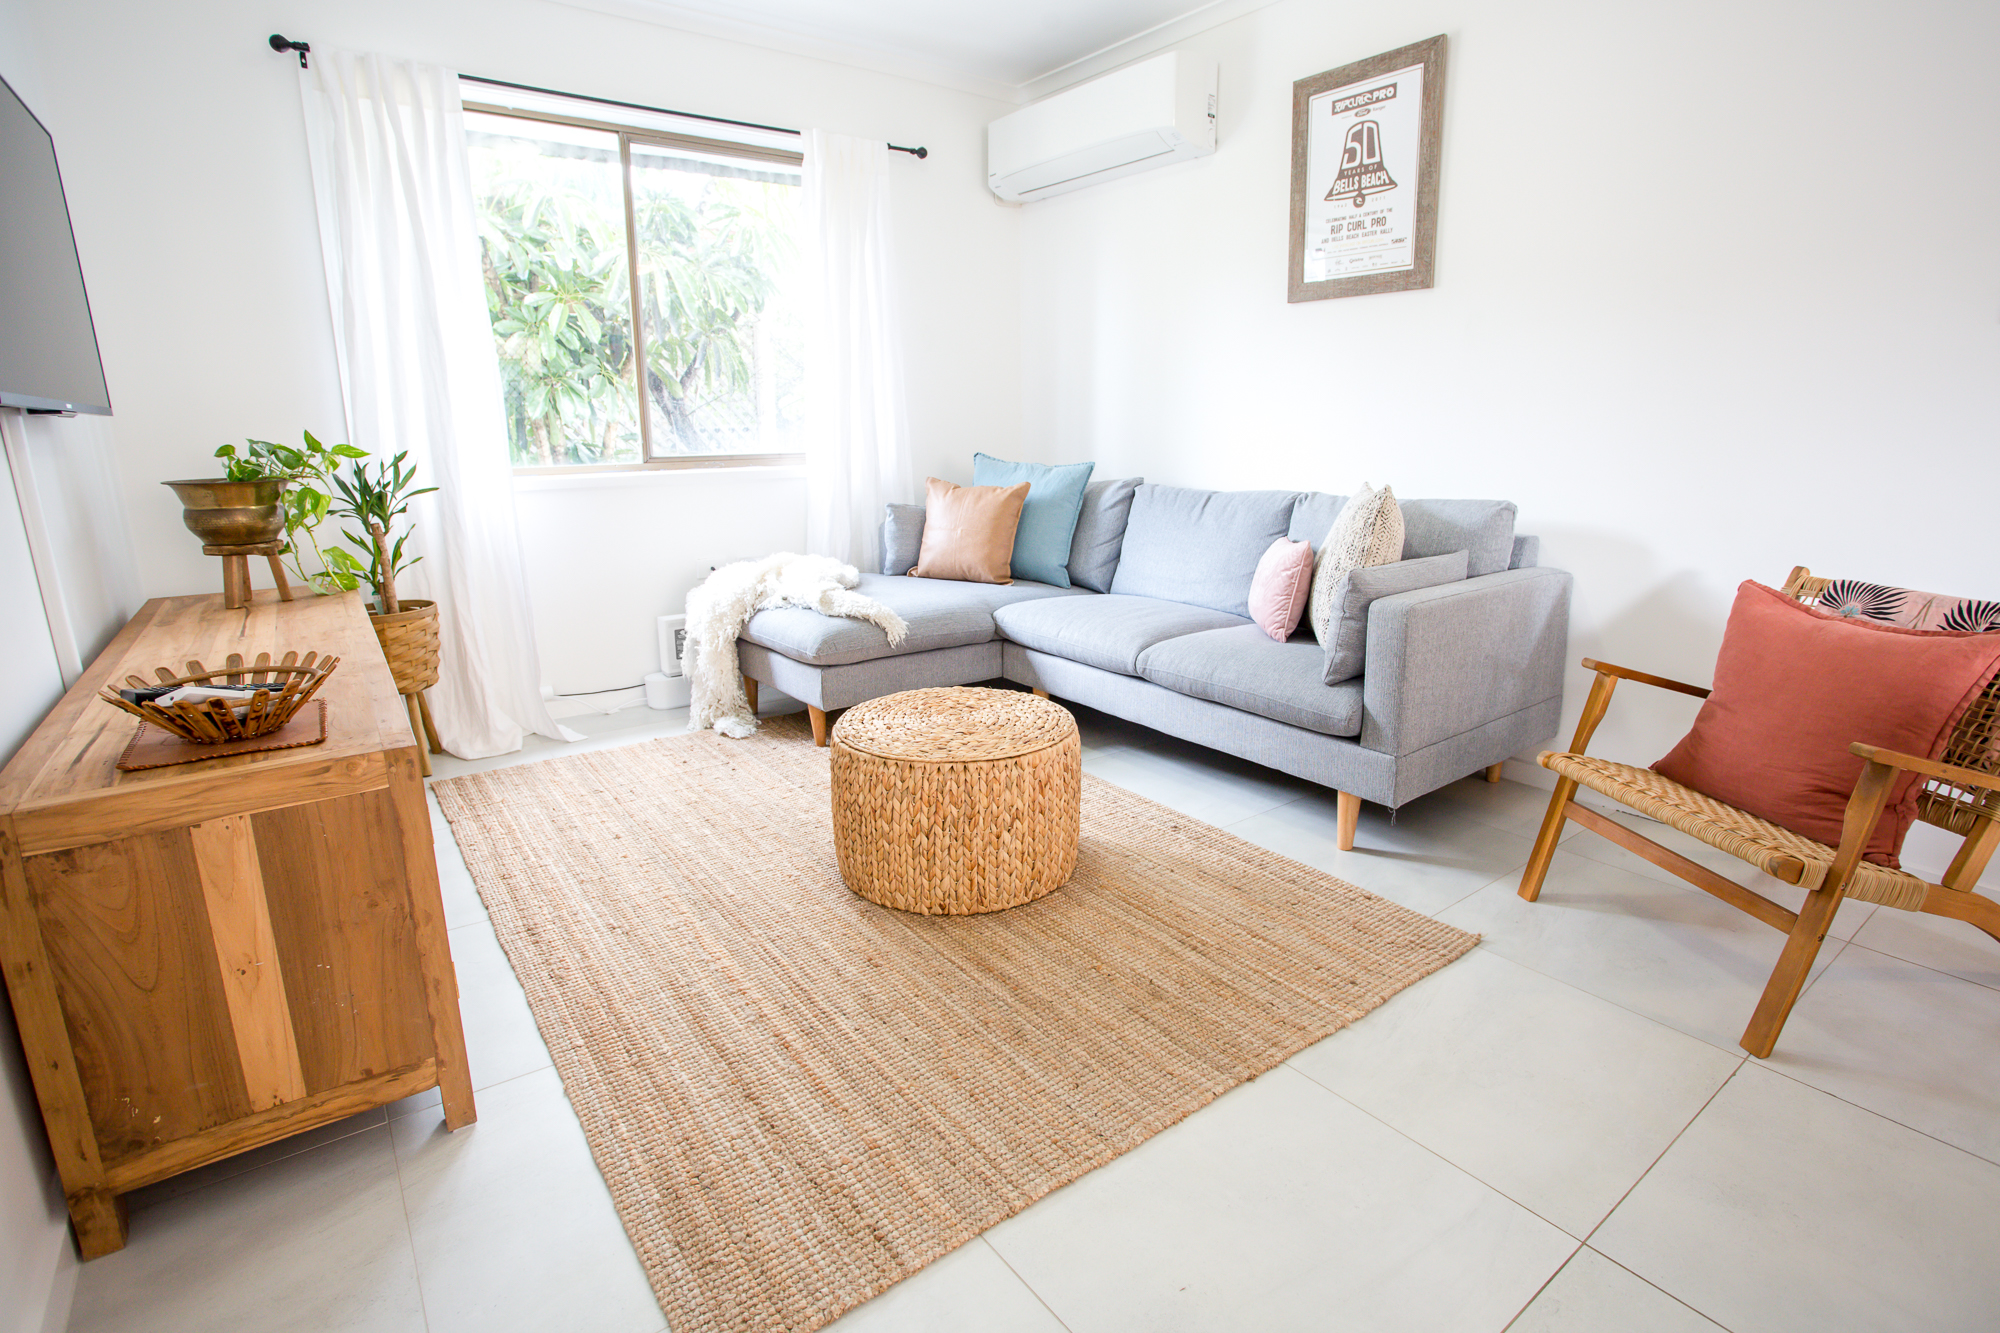 The Board room - Cabarita Beach NSW 2488A modern 1 bedroom apartment nestled in the heart of this chilled suburb